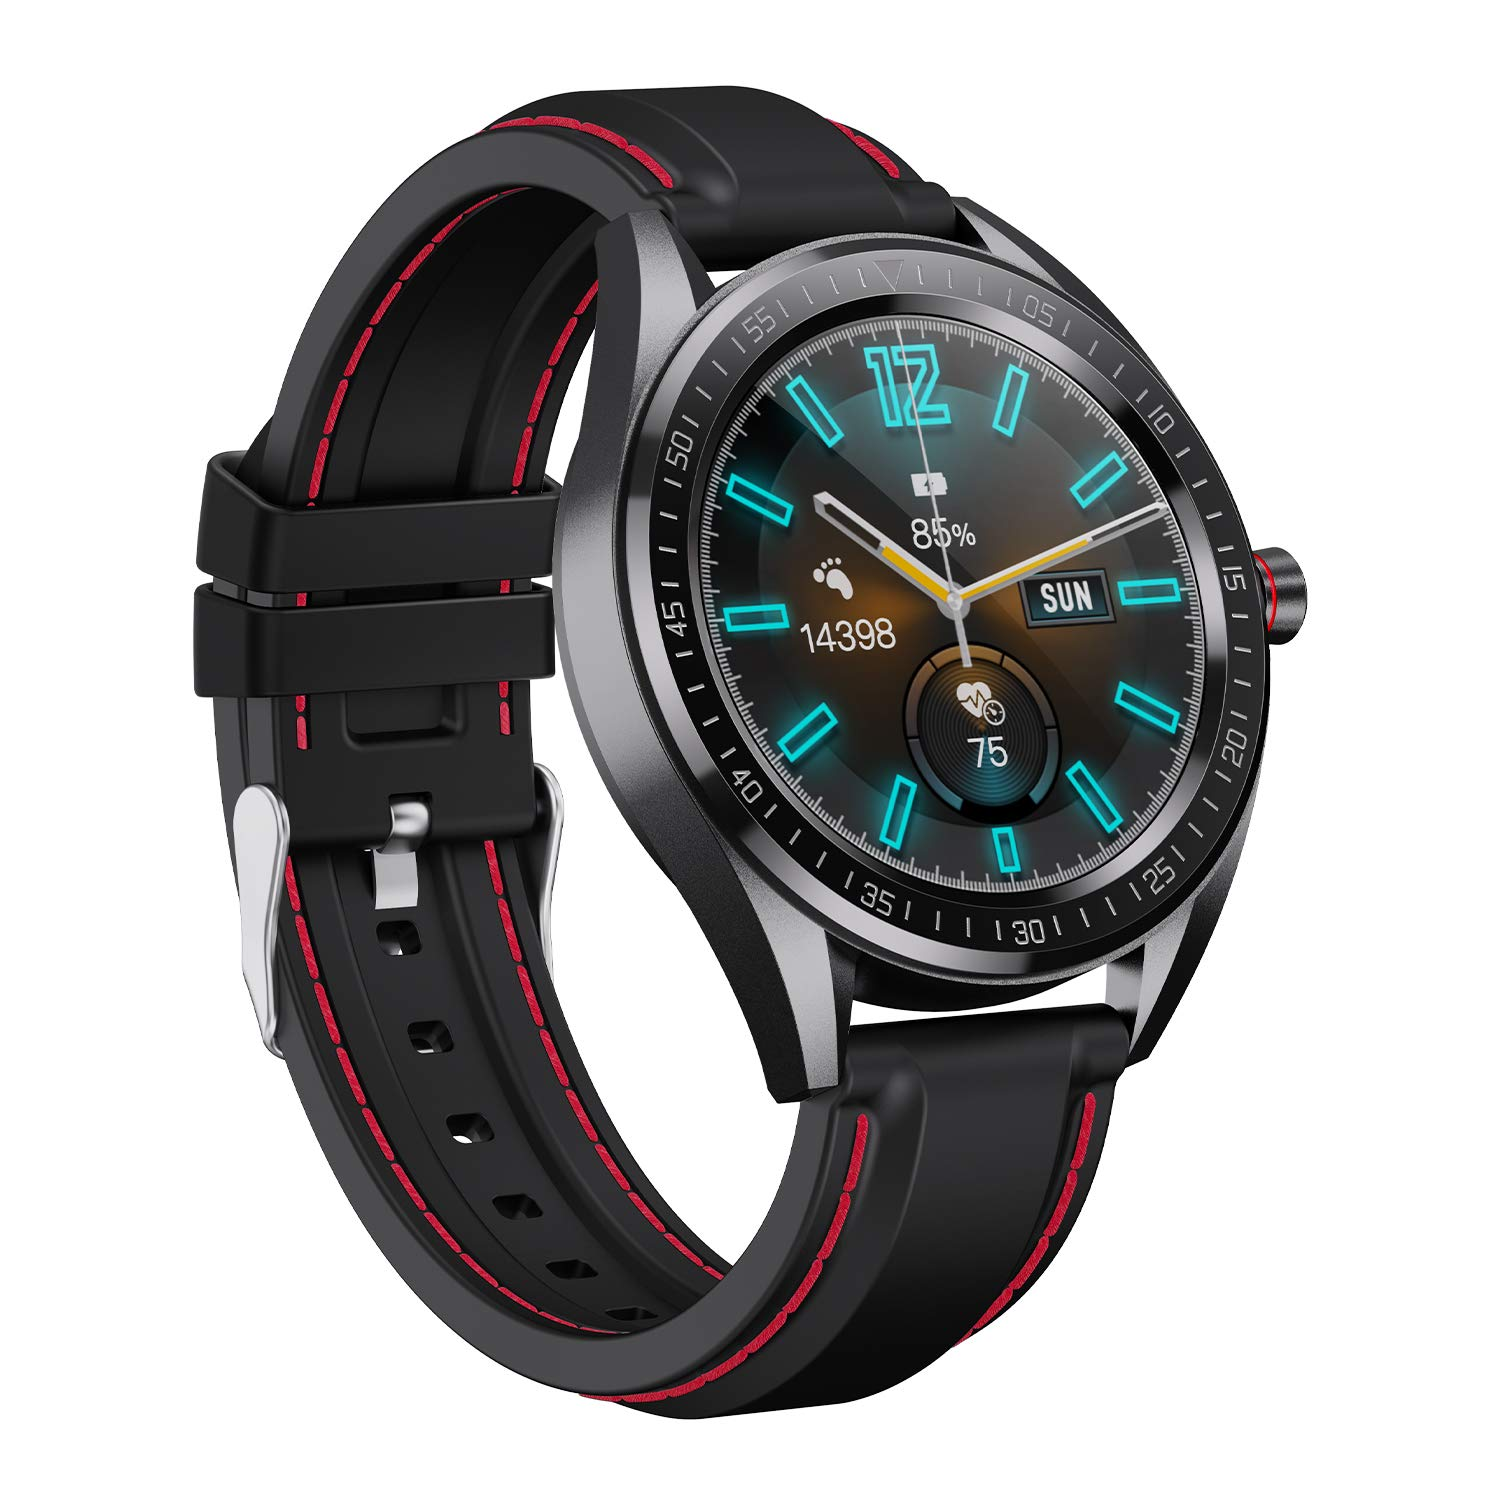 CrossBeats Trak Smart Watch 2020 Price, Features Launched in India